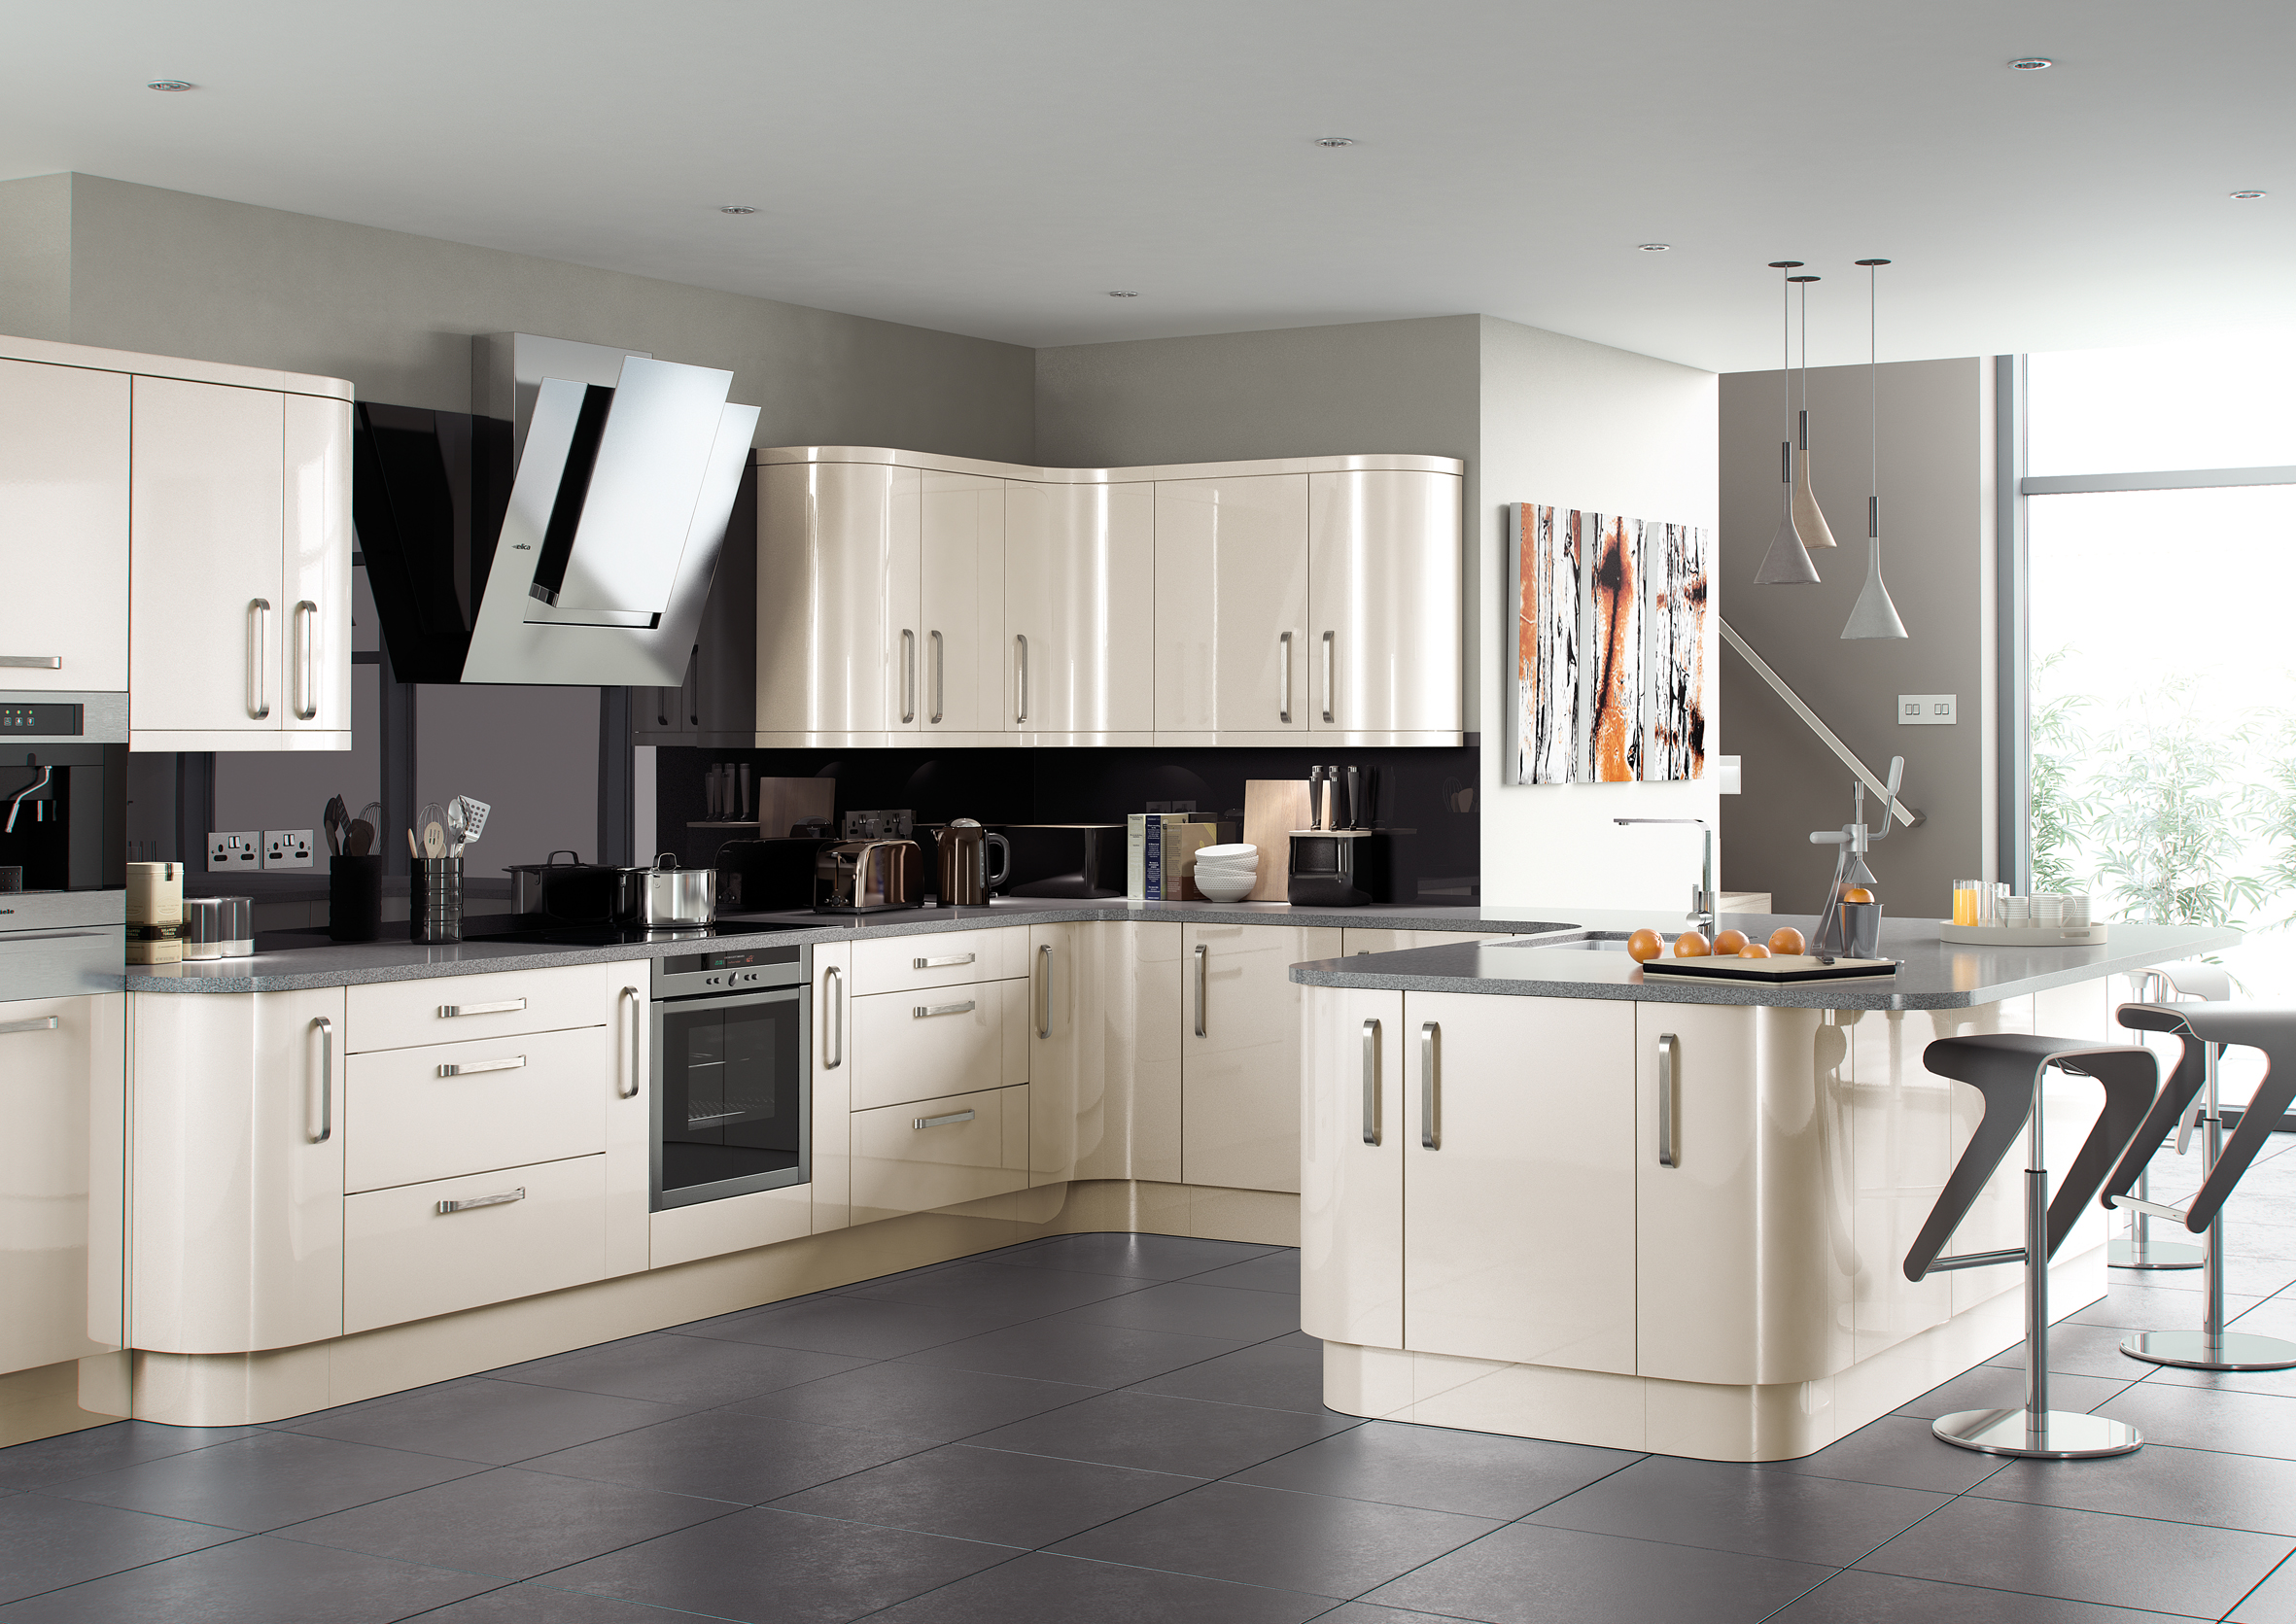 How to replace all of your kitchen doors step by step guide for City kitchen designs